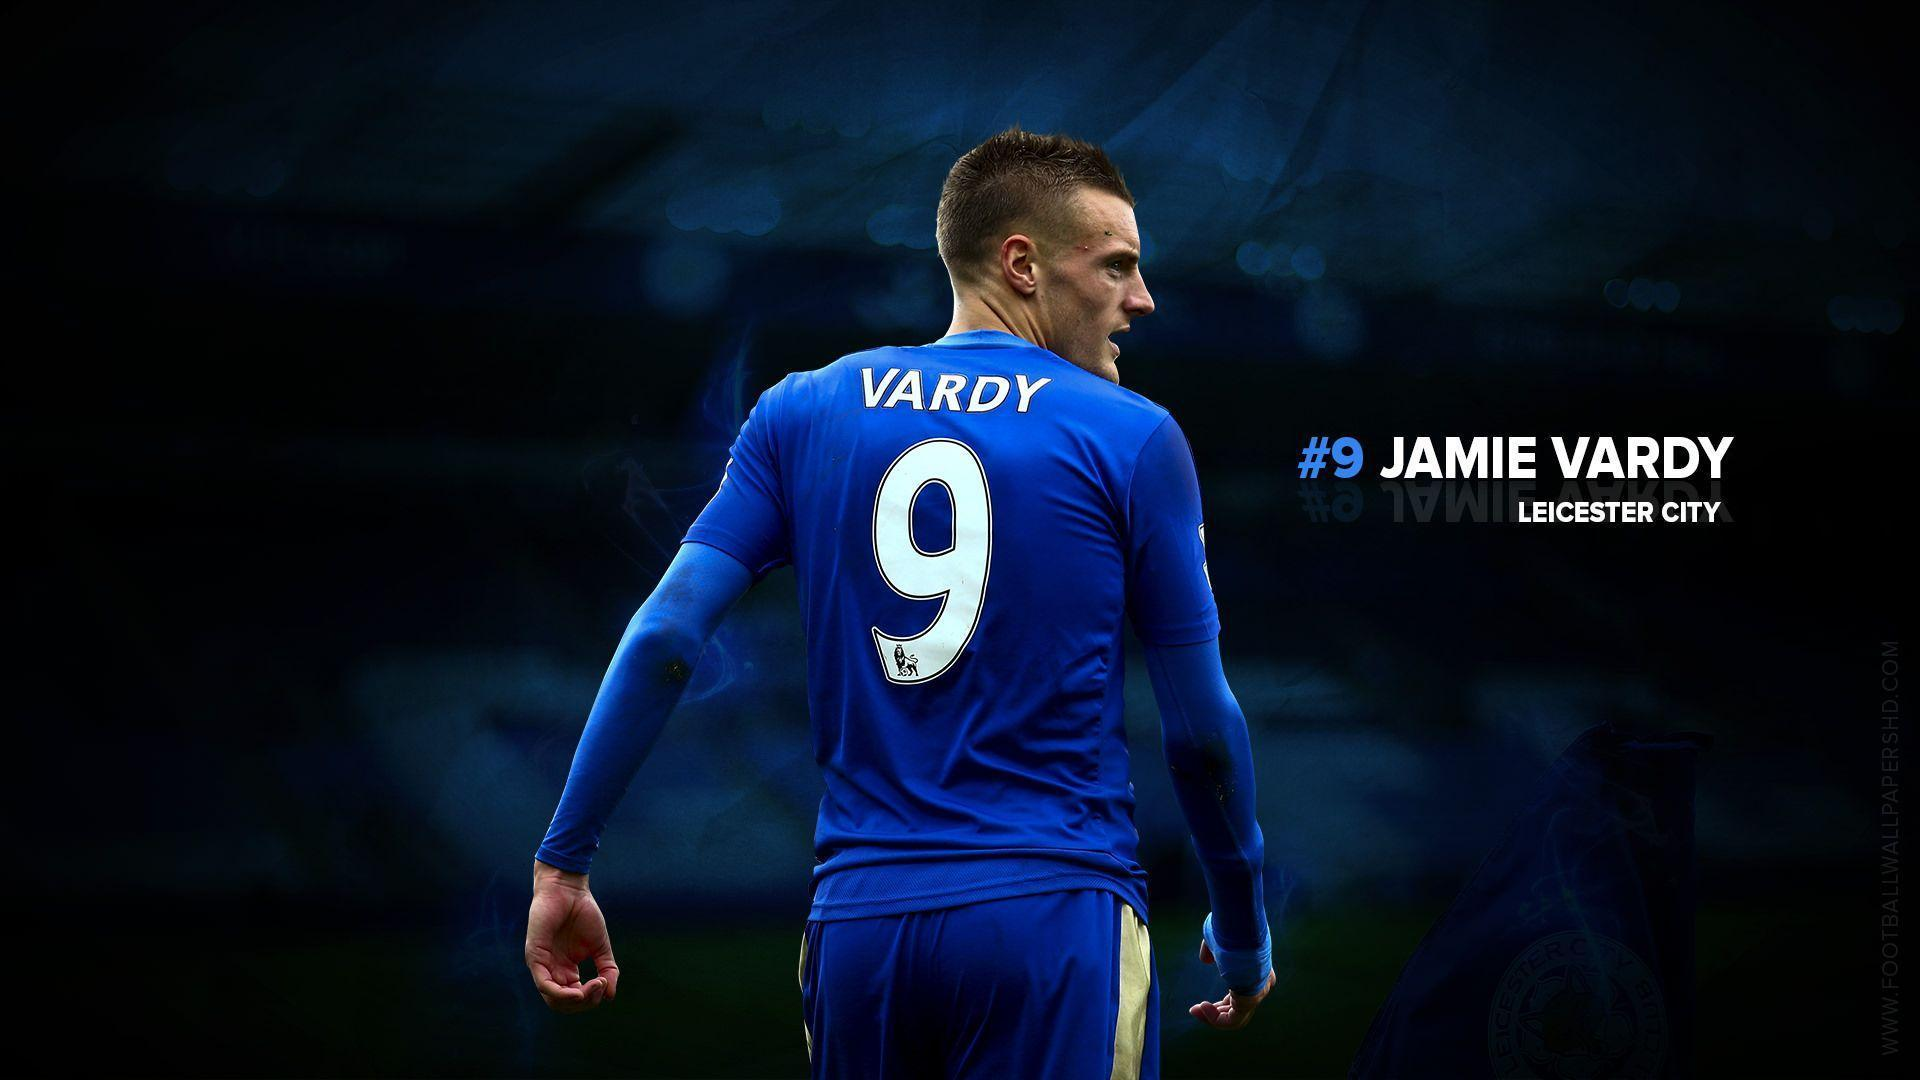 Jamie Vardy Leicester City Wallpaper | Football Wallpapers HD ...